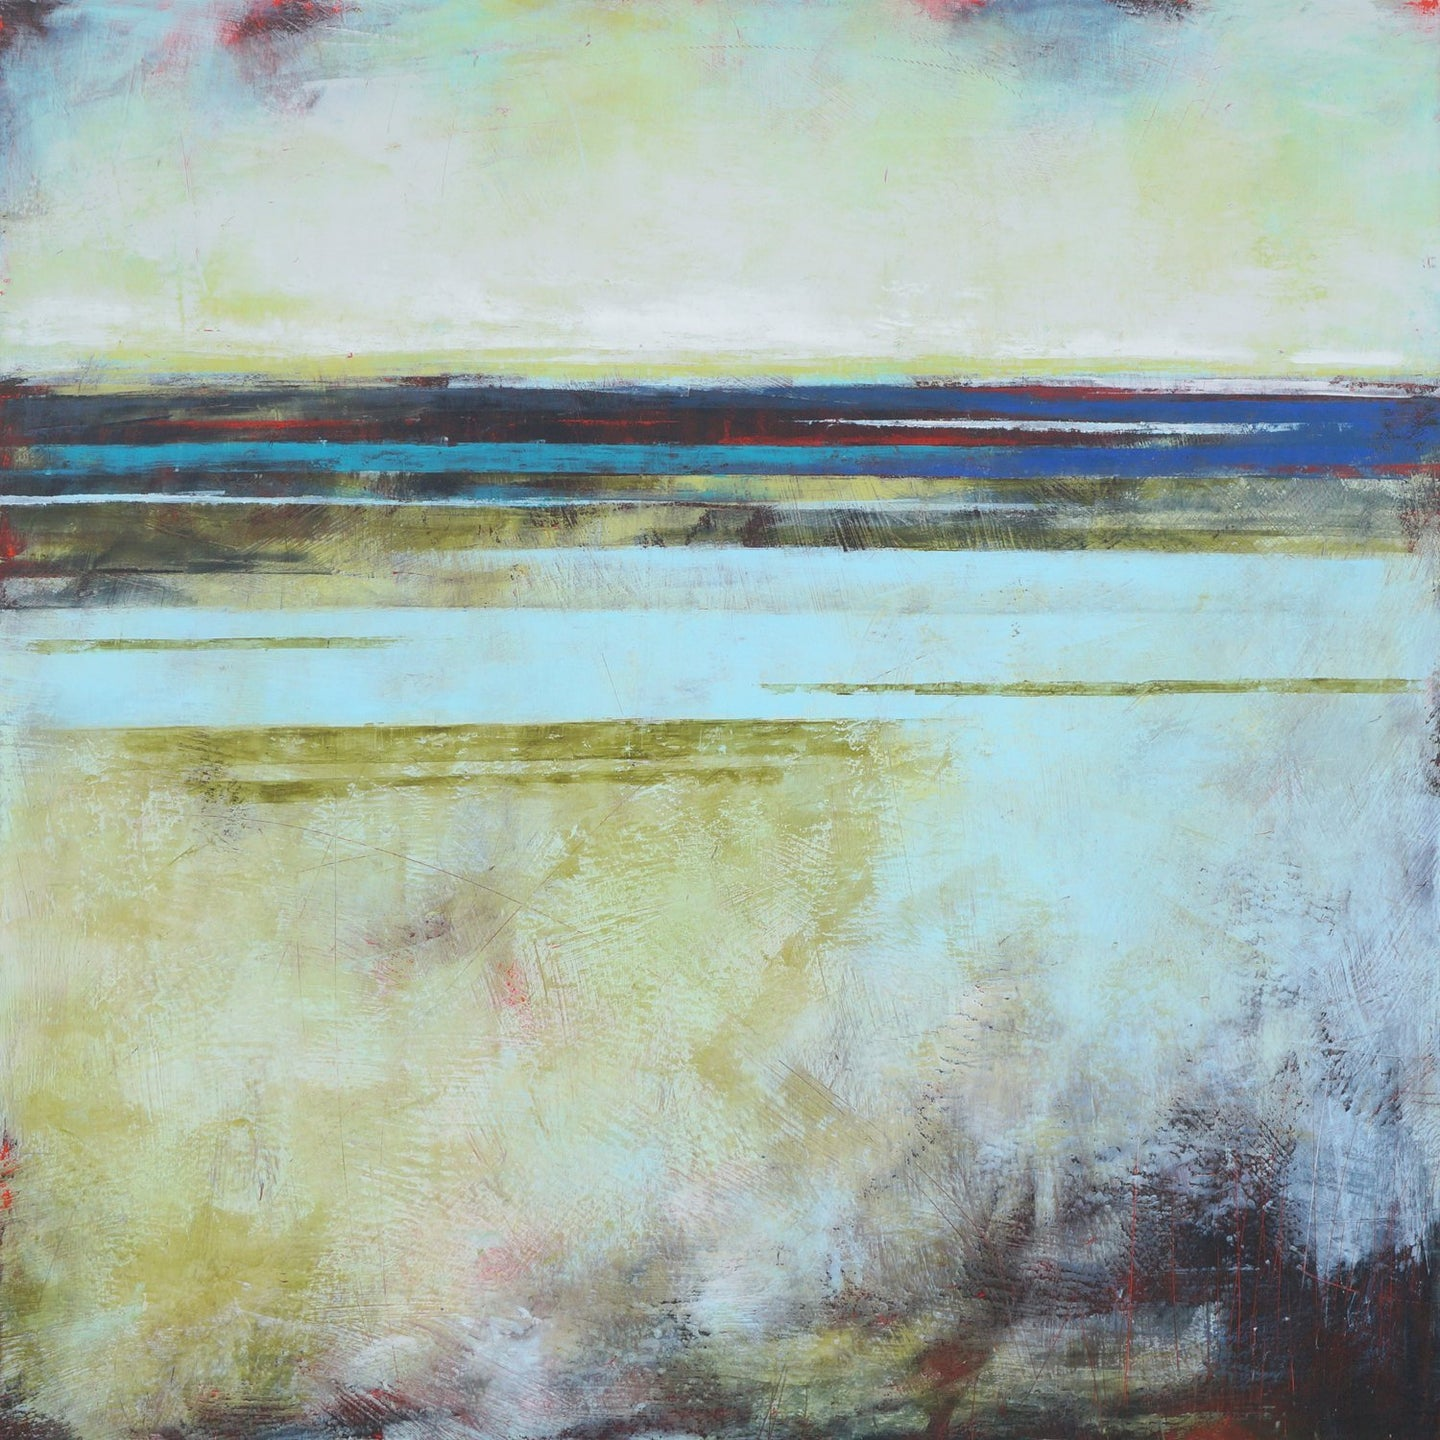 Square coastal abstract landscape artwork